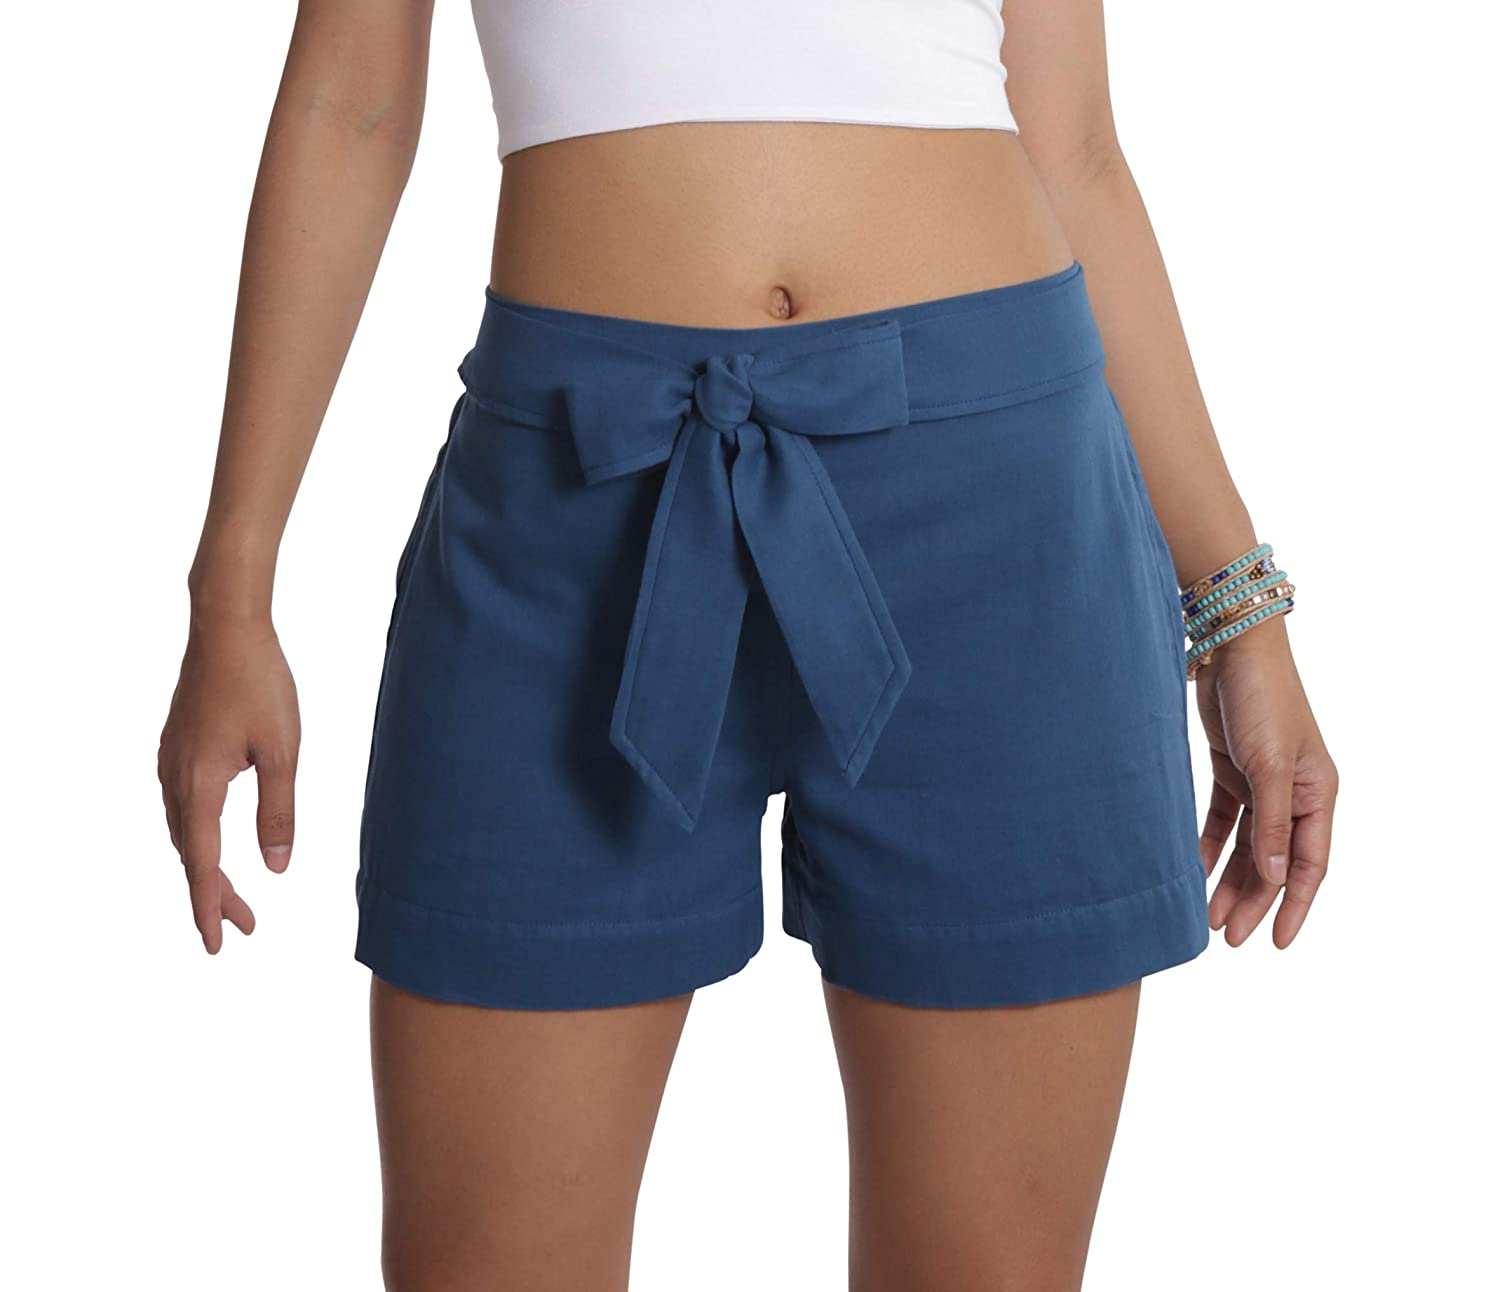 bluee Tropic Bliss Organic Cotton Tie Shorts for Women, Hand Dyed, Comfy Boho Style